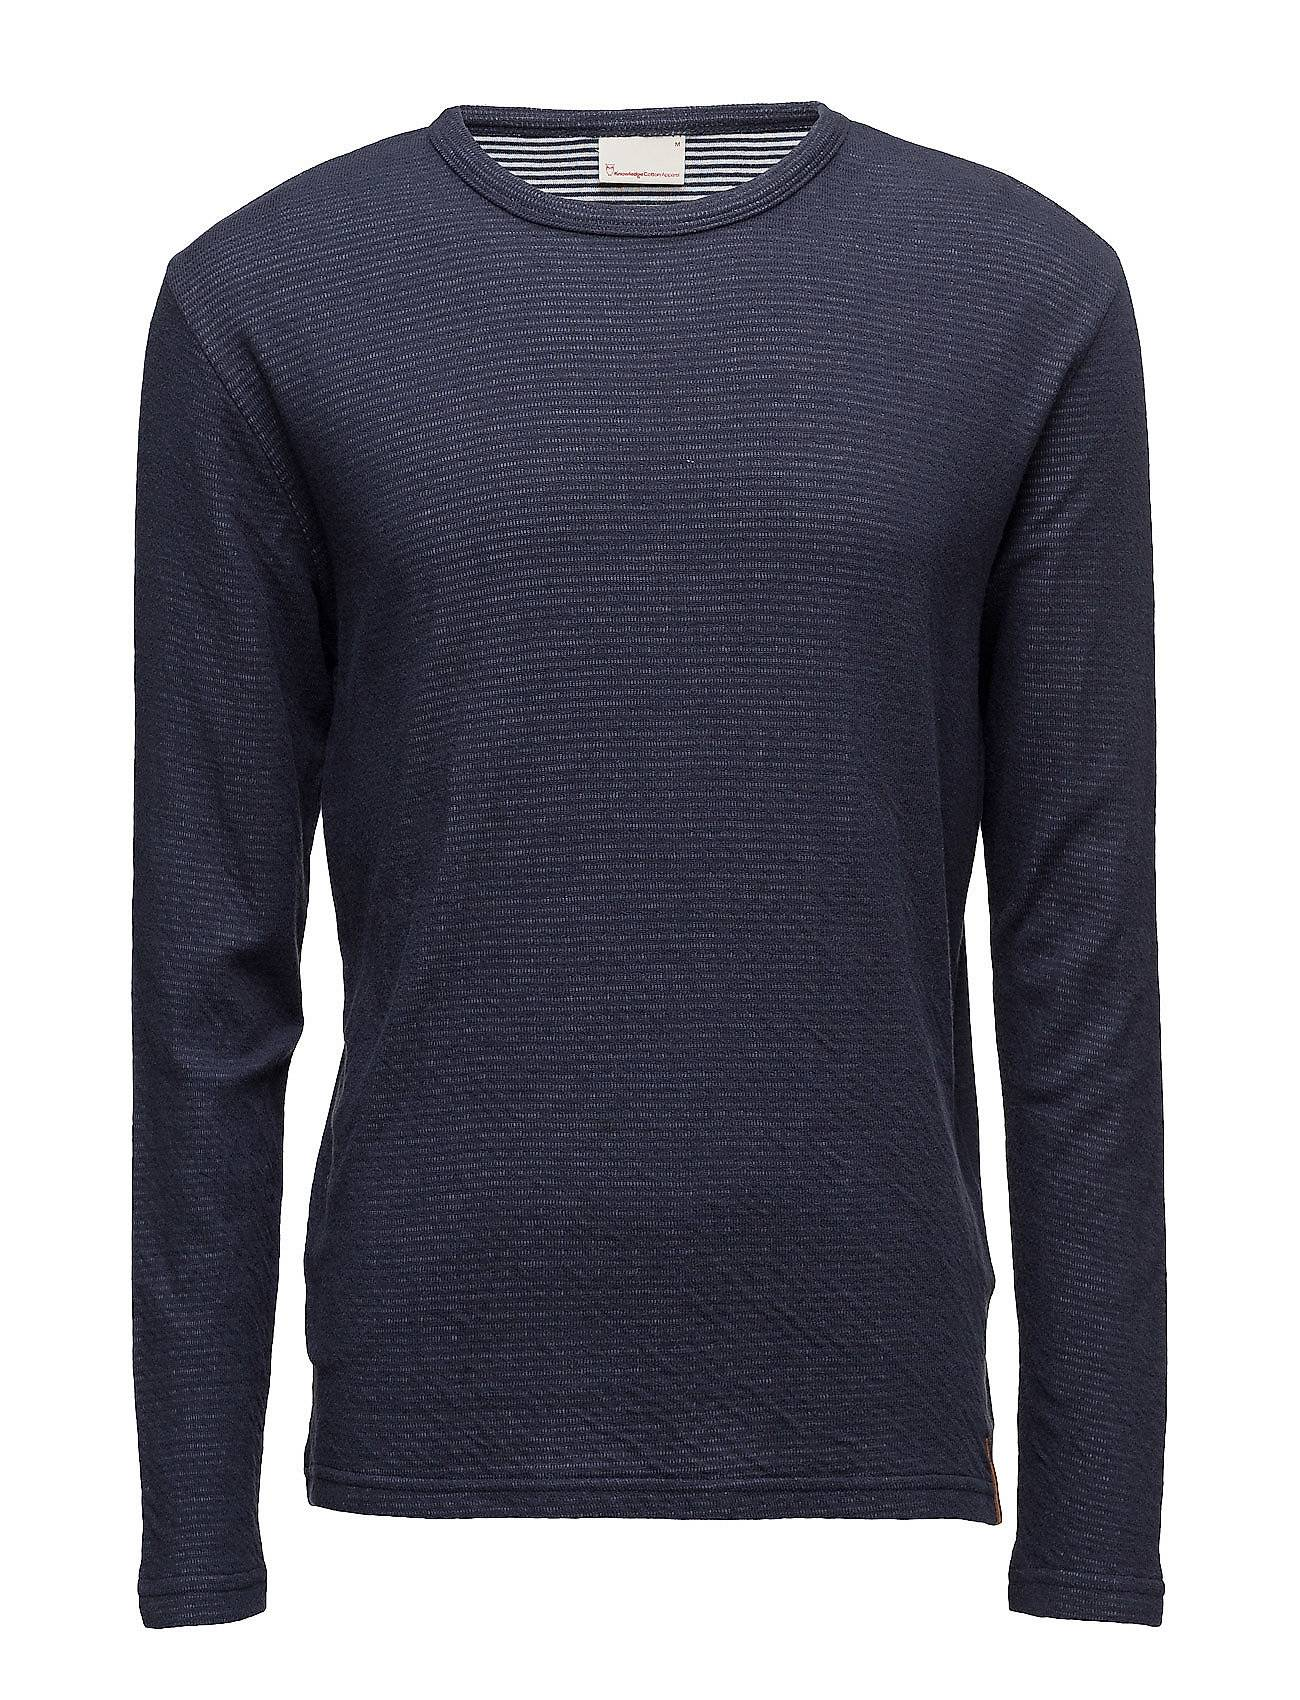 Knowledge Cotton Apparel Double Layer Long Sleeve T-Shirt -